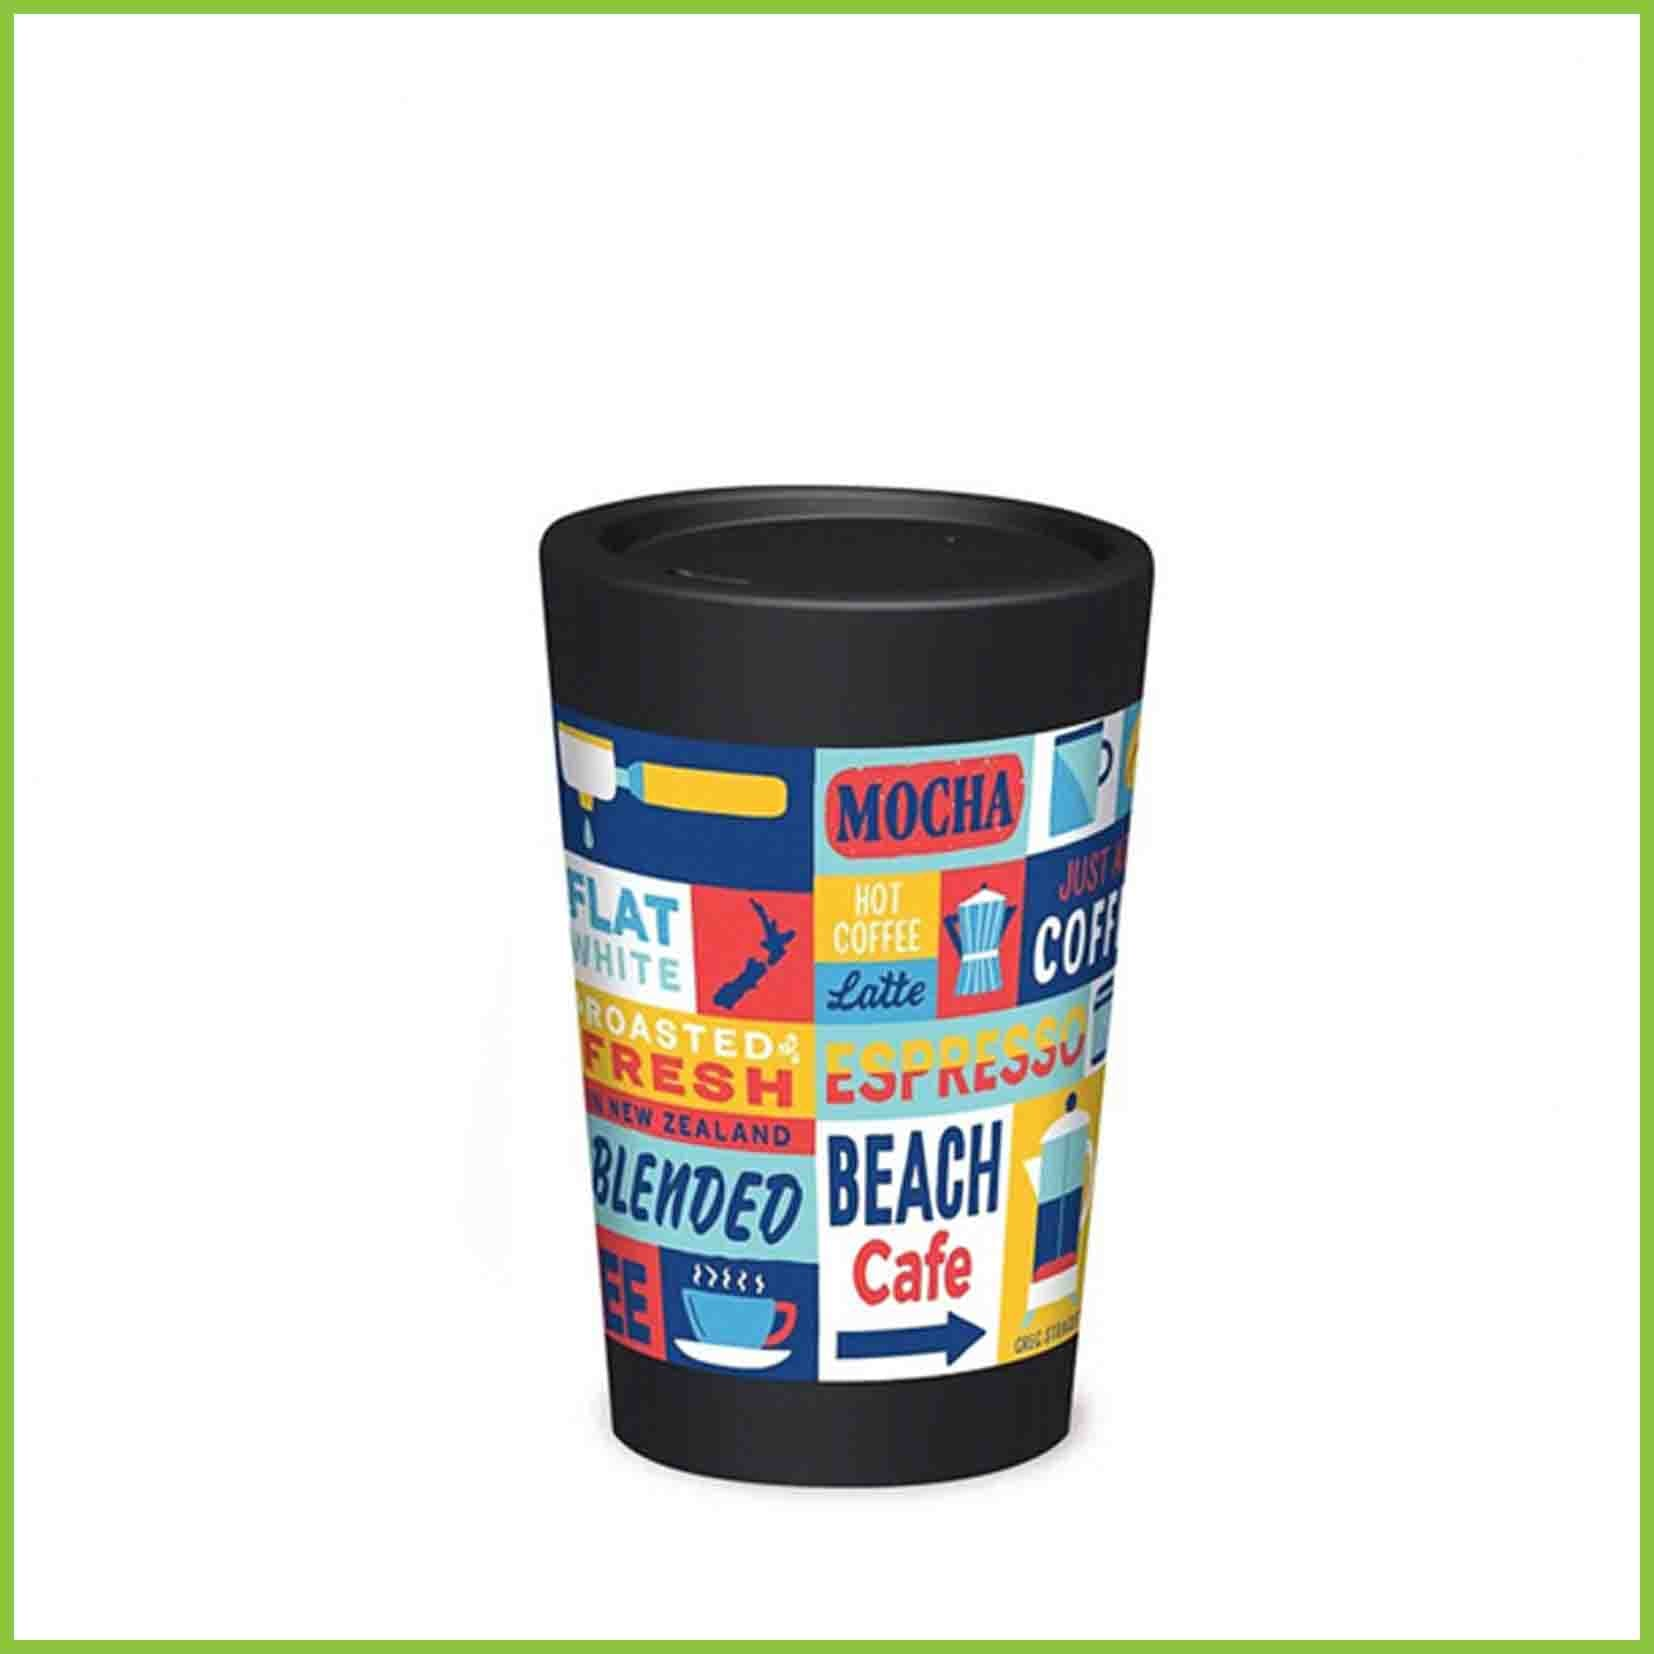 A lightweight reusable cup from CuppaCoffeeCup with a Straight Coffee design.